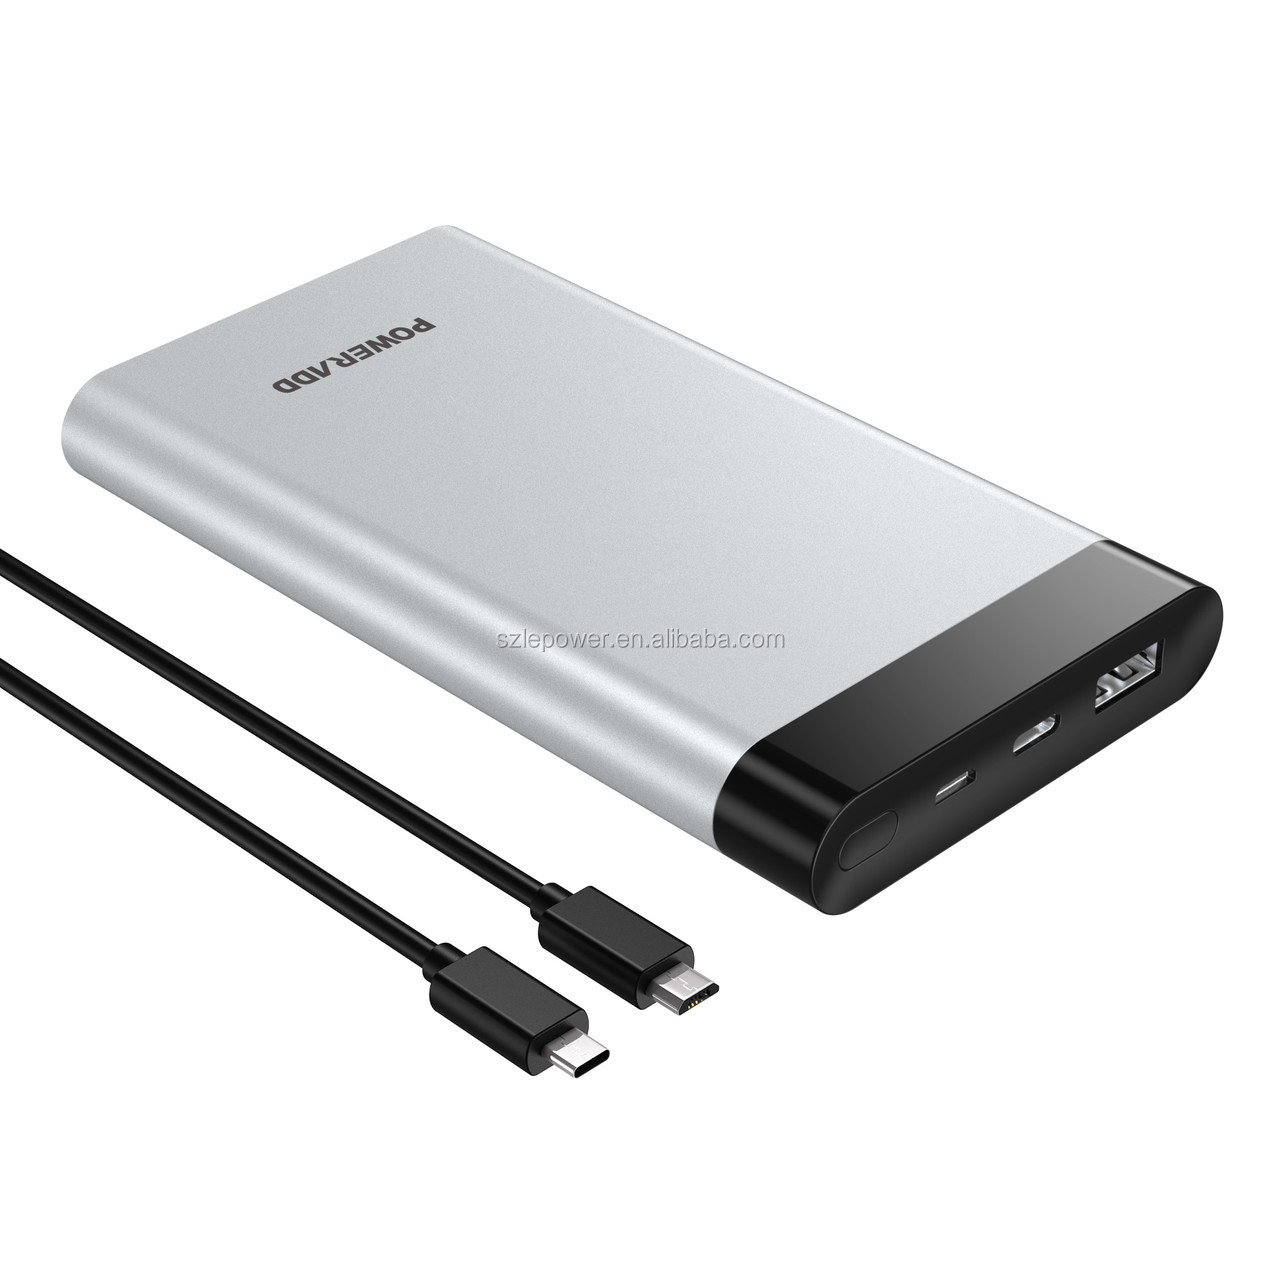 Poweradd Type C Input Virgo Portable charger Power Bank 10000mah